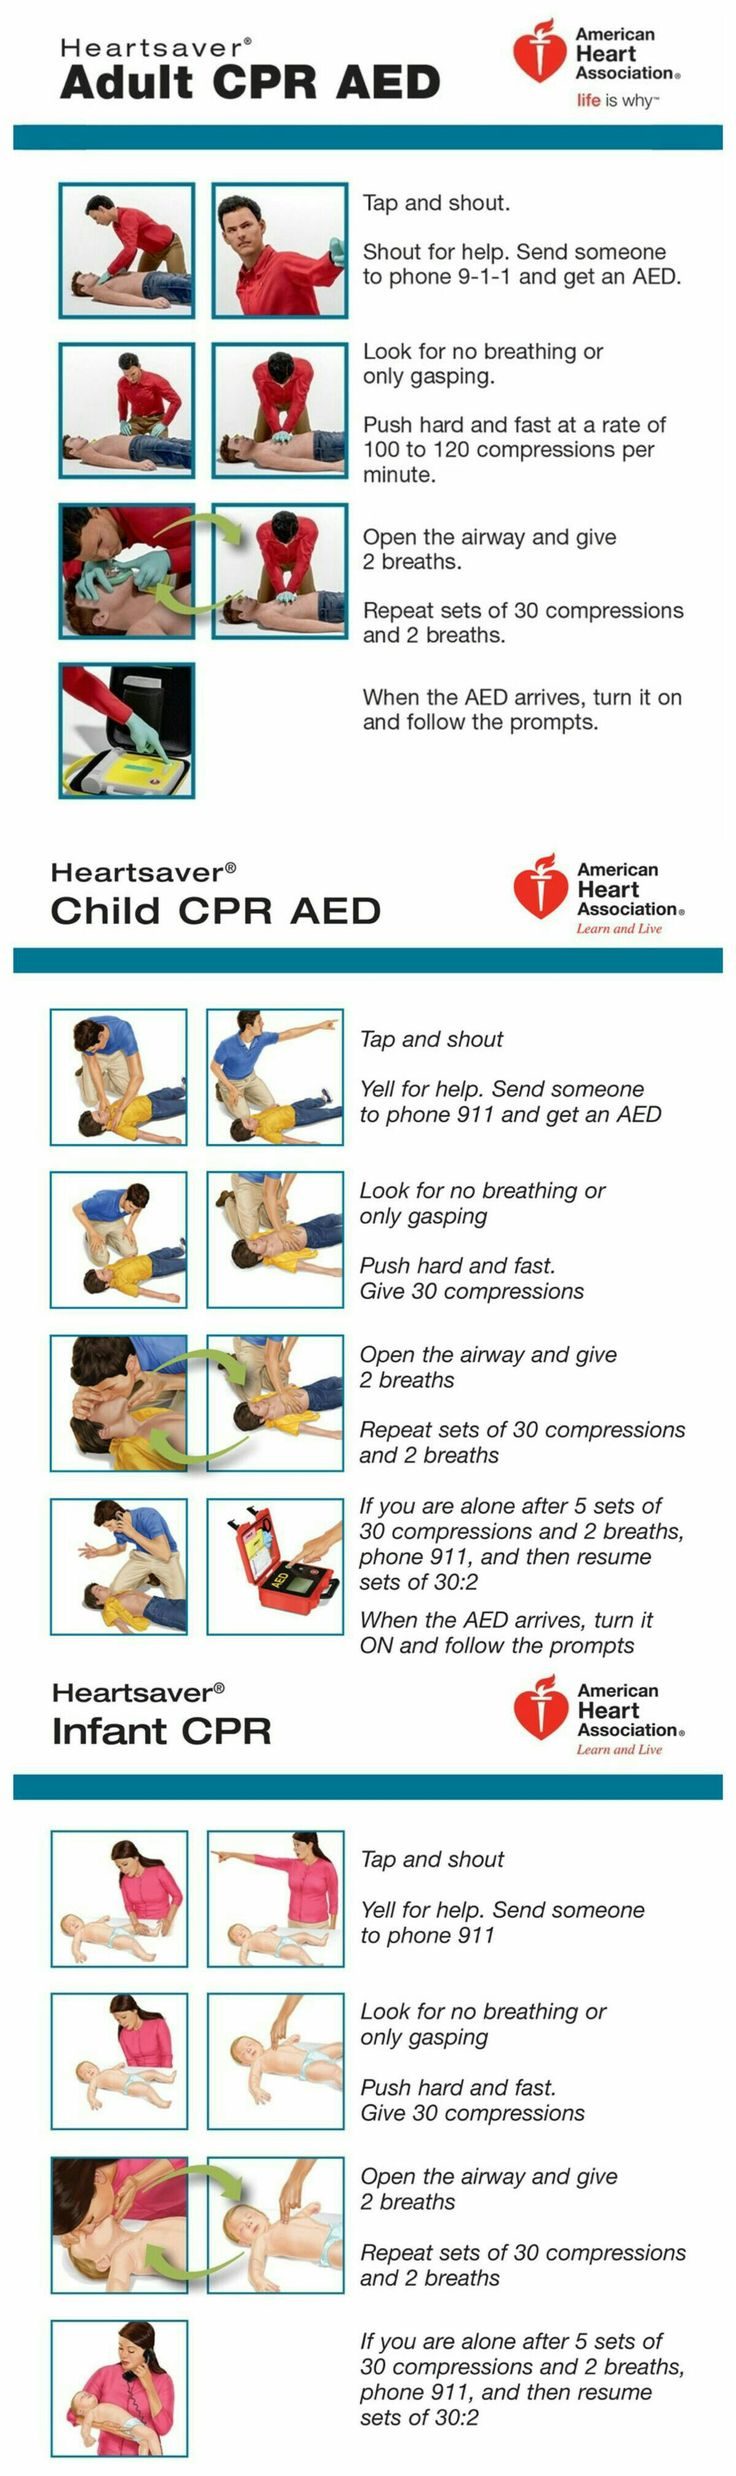 How to perform CPR and how to use an AED. These steps are easy to follow and will help you in case you need to perform CPR and use a defibrillator. You can also practice CPR on a CPR dummy, learn which you should buy here: http://insidefirstaid.com/profes